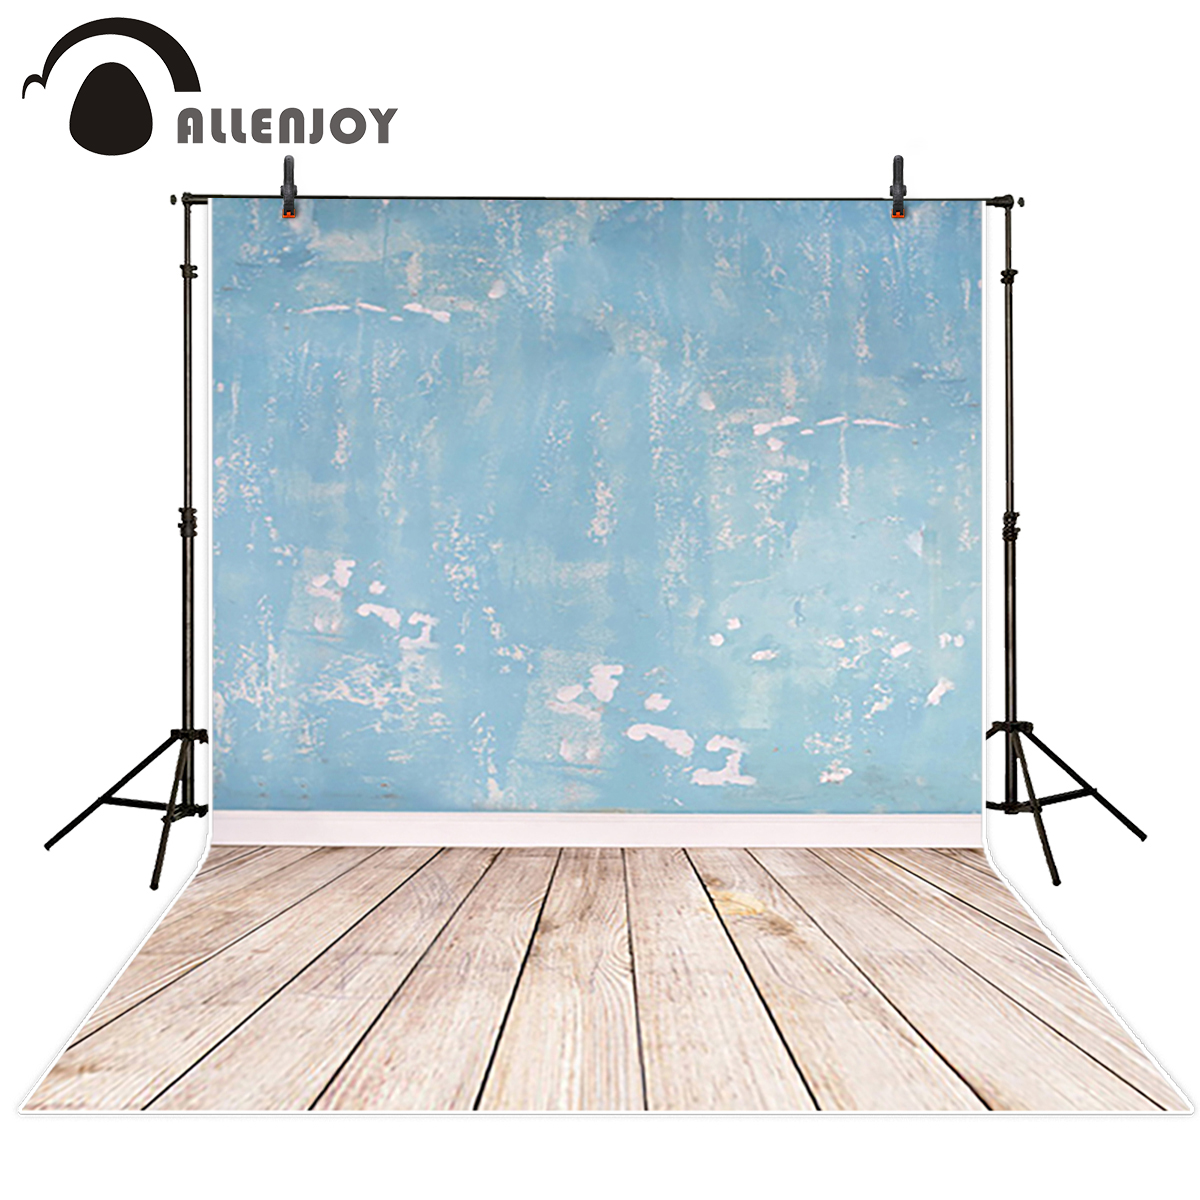 Allenjoy wall paper Photo background Blue distressed mottled walls photocall Vinyl photography backdrops photo studio shengyongbao 300cm 200cm vinyl custom photography backdrops brick wall theme photo studio props photography background brw 12